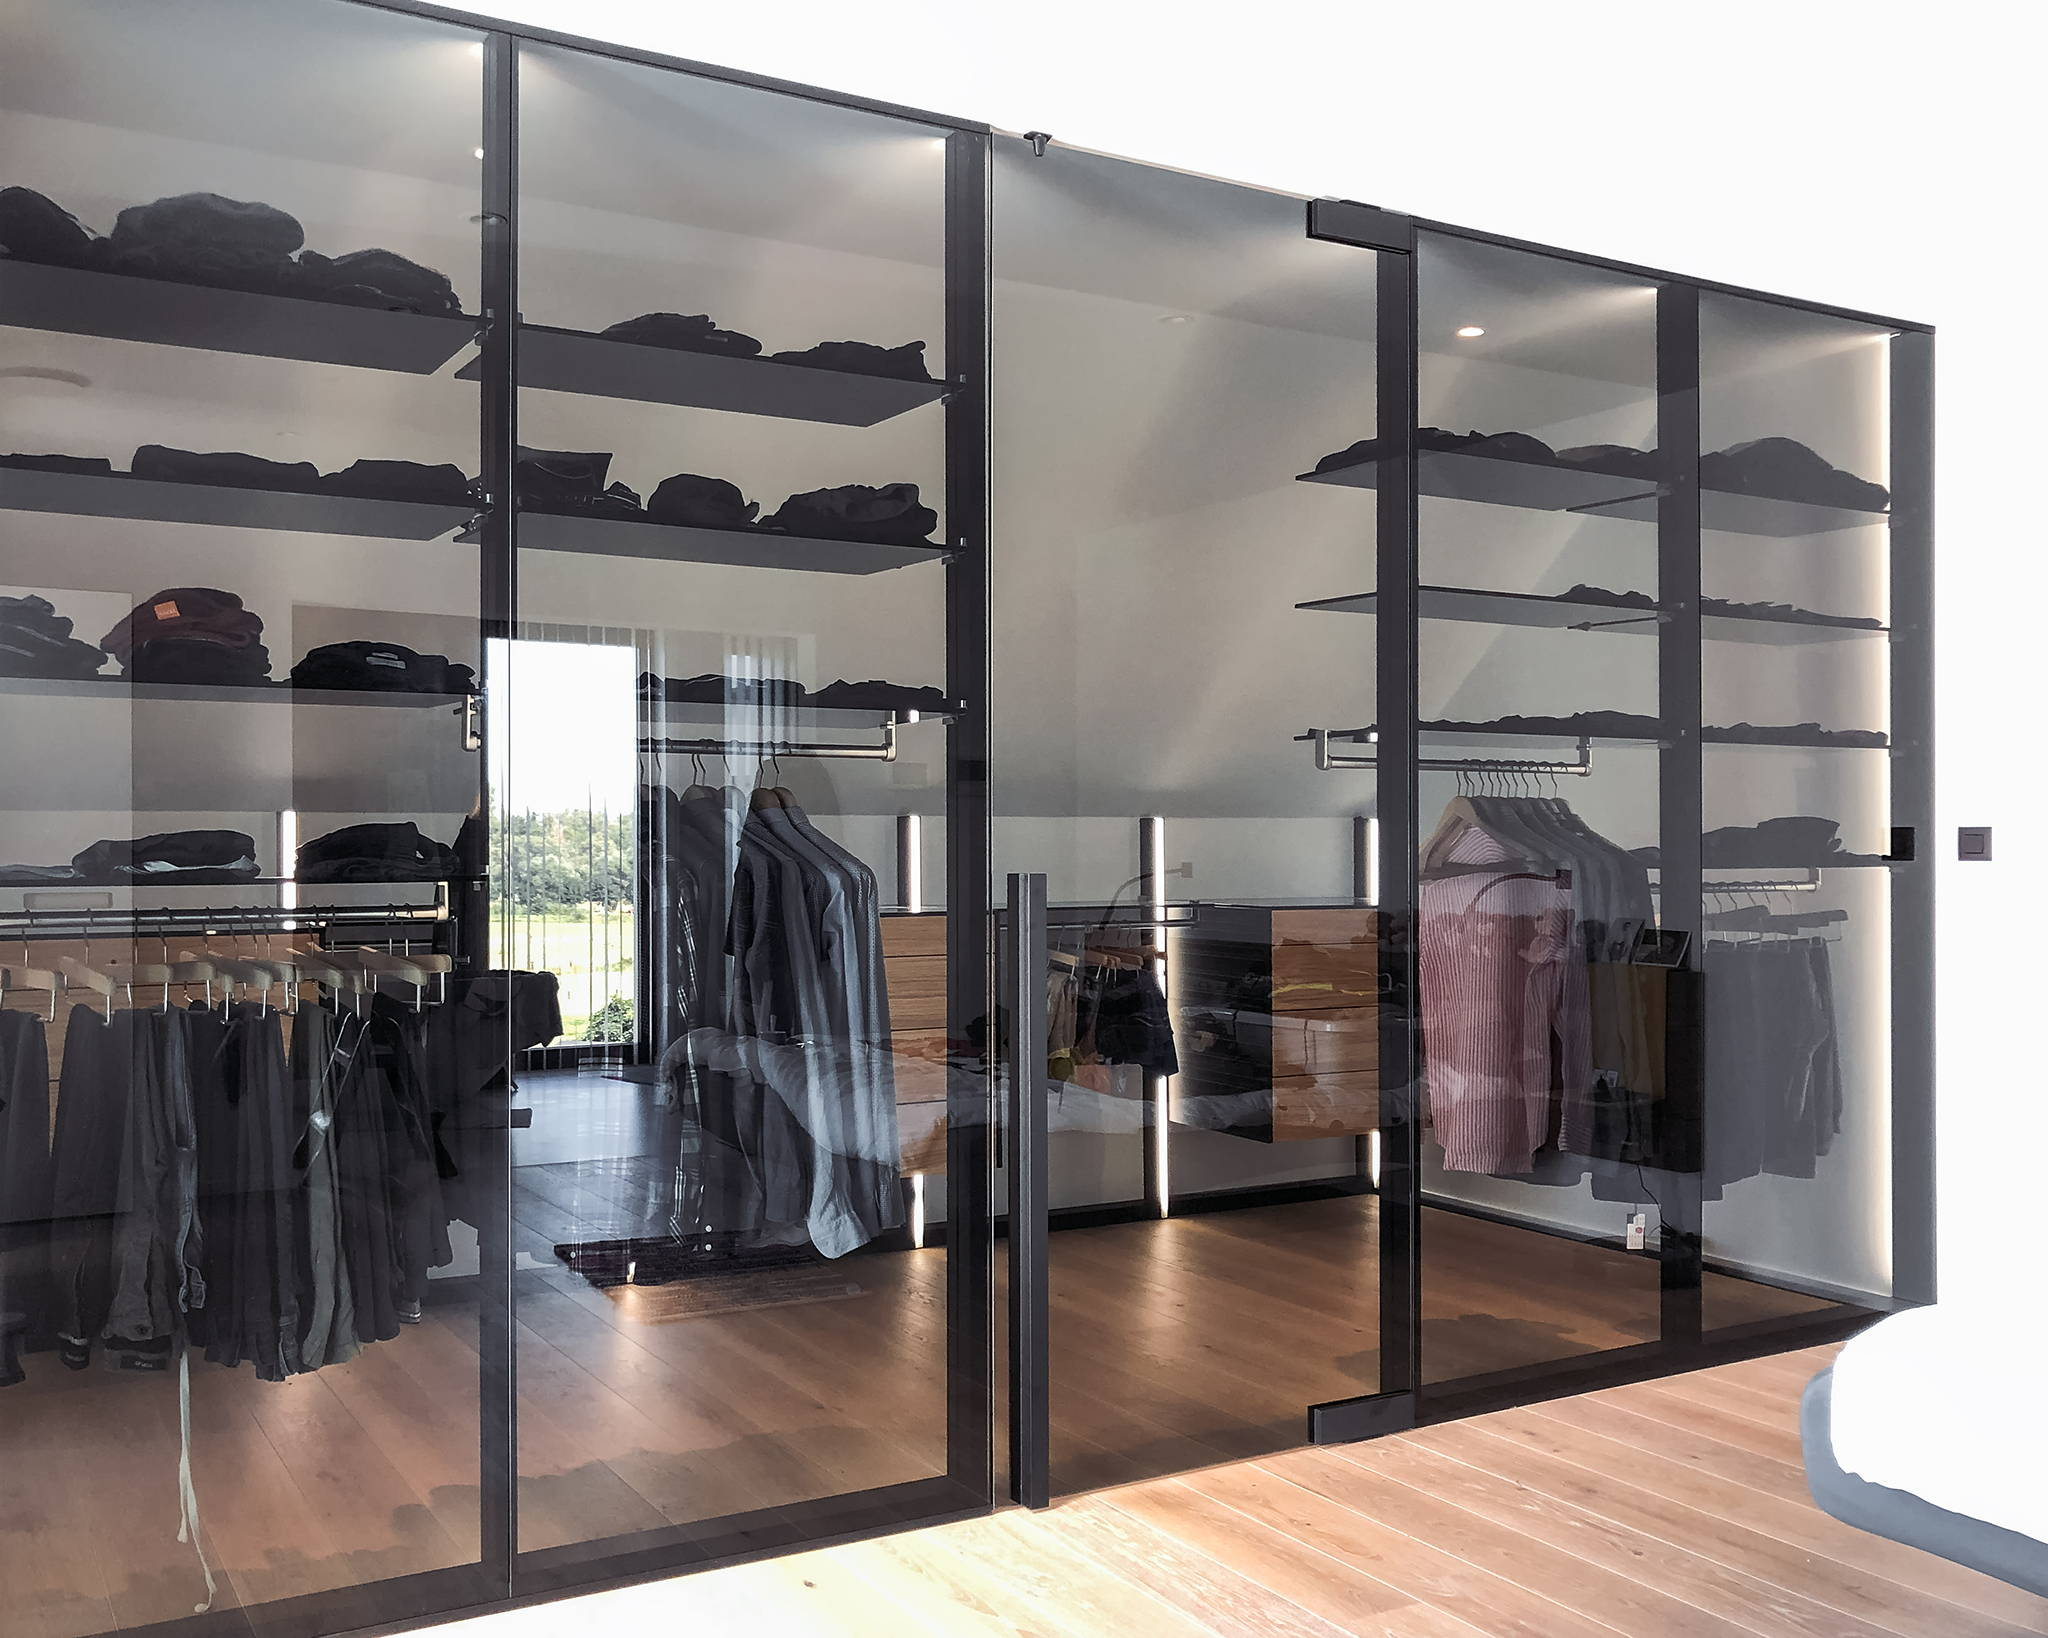 Luxury walk-in closet with a glass entry door